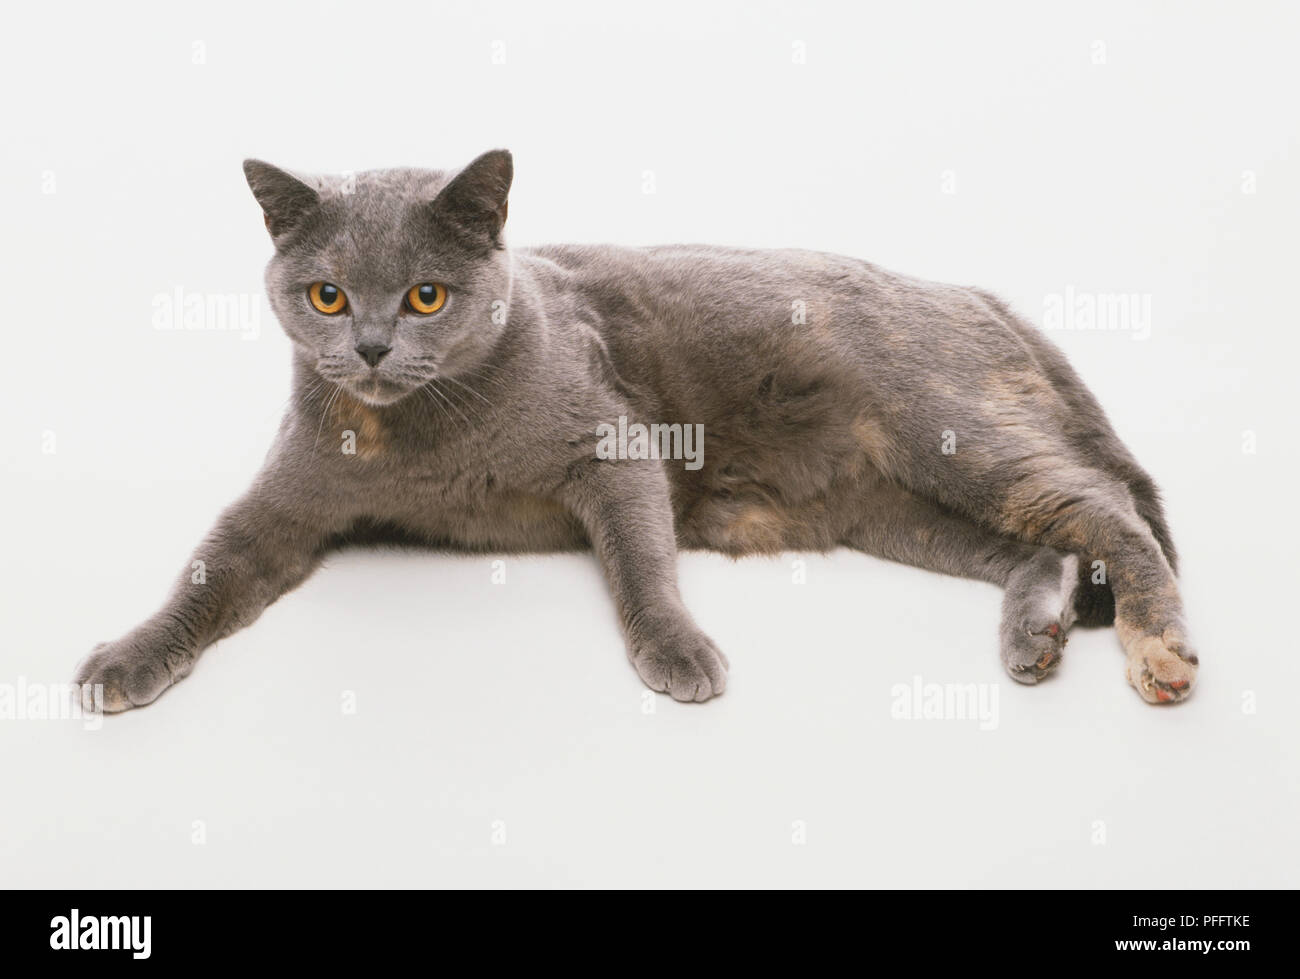 British Blue and Cream Cat (Felis catus) lying on its side, facing forward, with its paws out front, side view - Stock Image